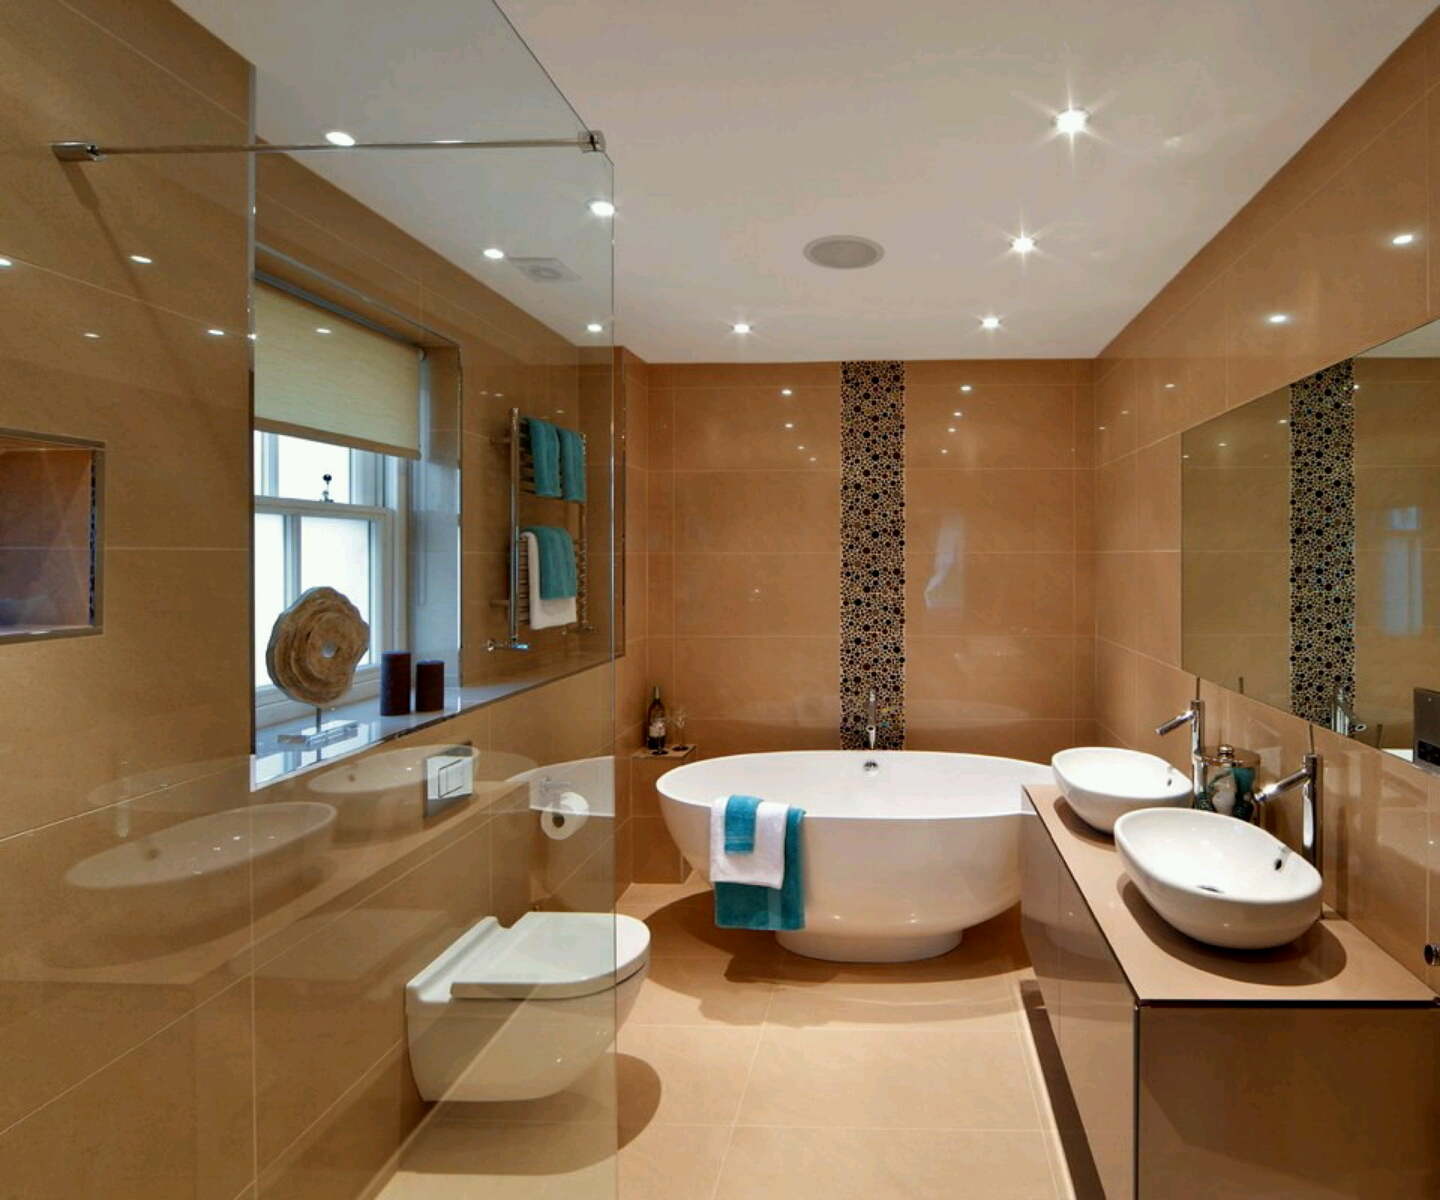 25 small but luxury bathroom design ideas for Bathroom toilet design ideas